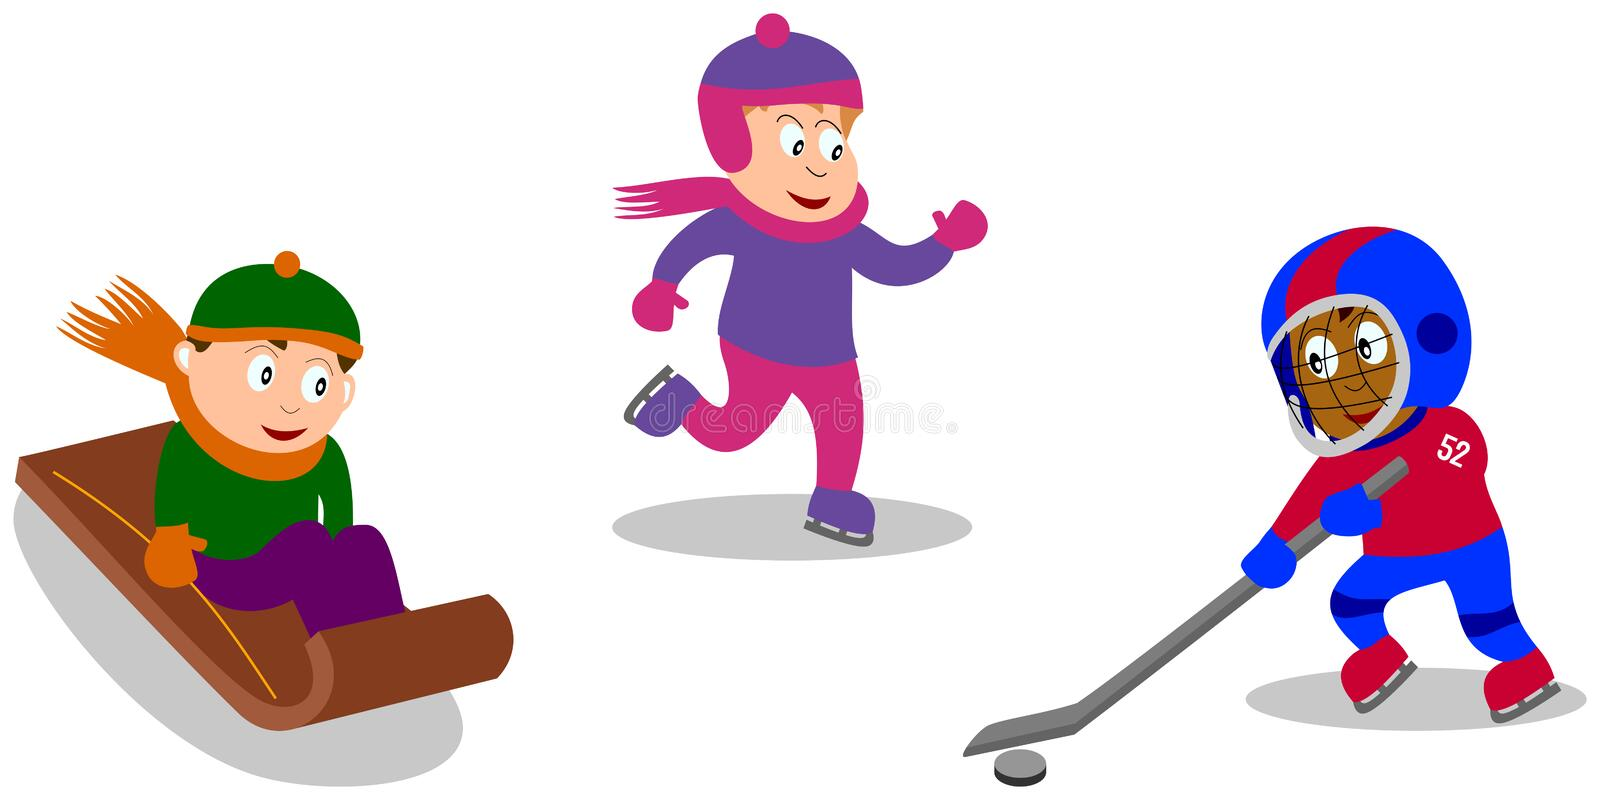 Kids Playing - Winter Games. Three kids (isolated on white background) playing ice hockey, with a sled on the snow, skating on ice. You can find other sports in vector illustration